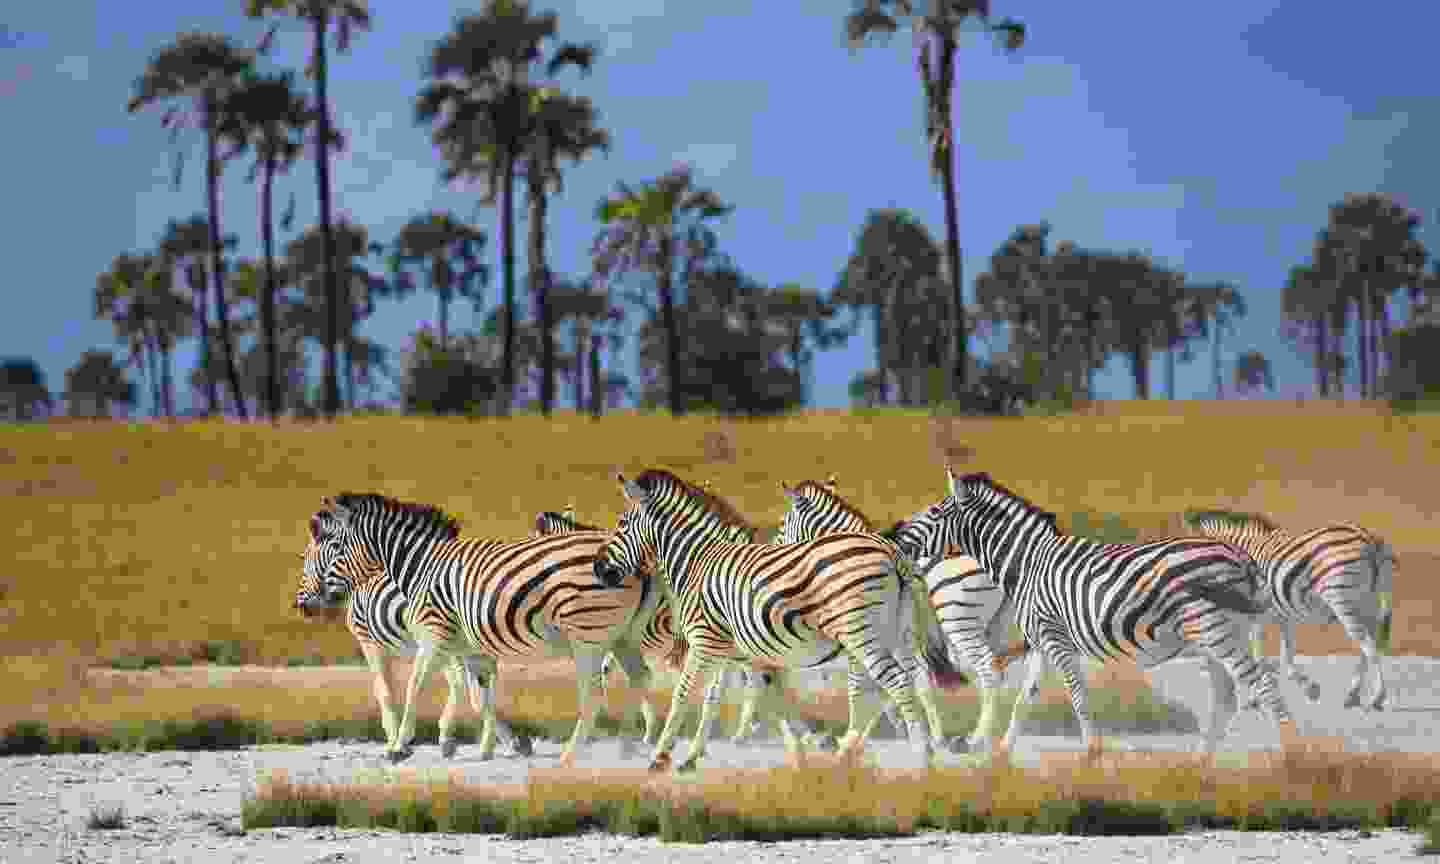 Zebras on the move in Makgadikgadi Pans National Park (Shutterstock)